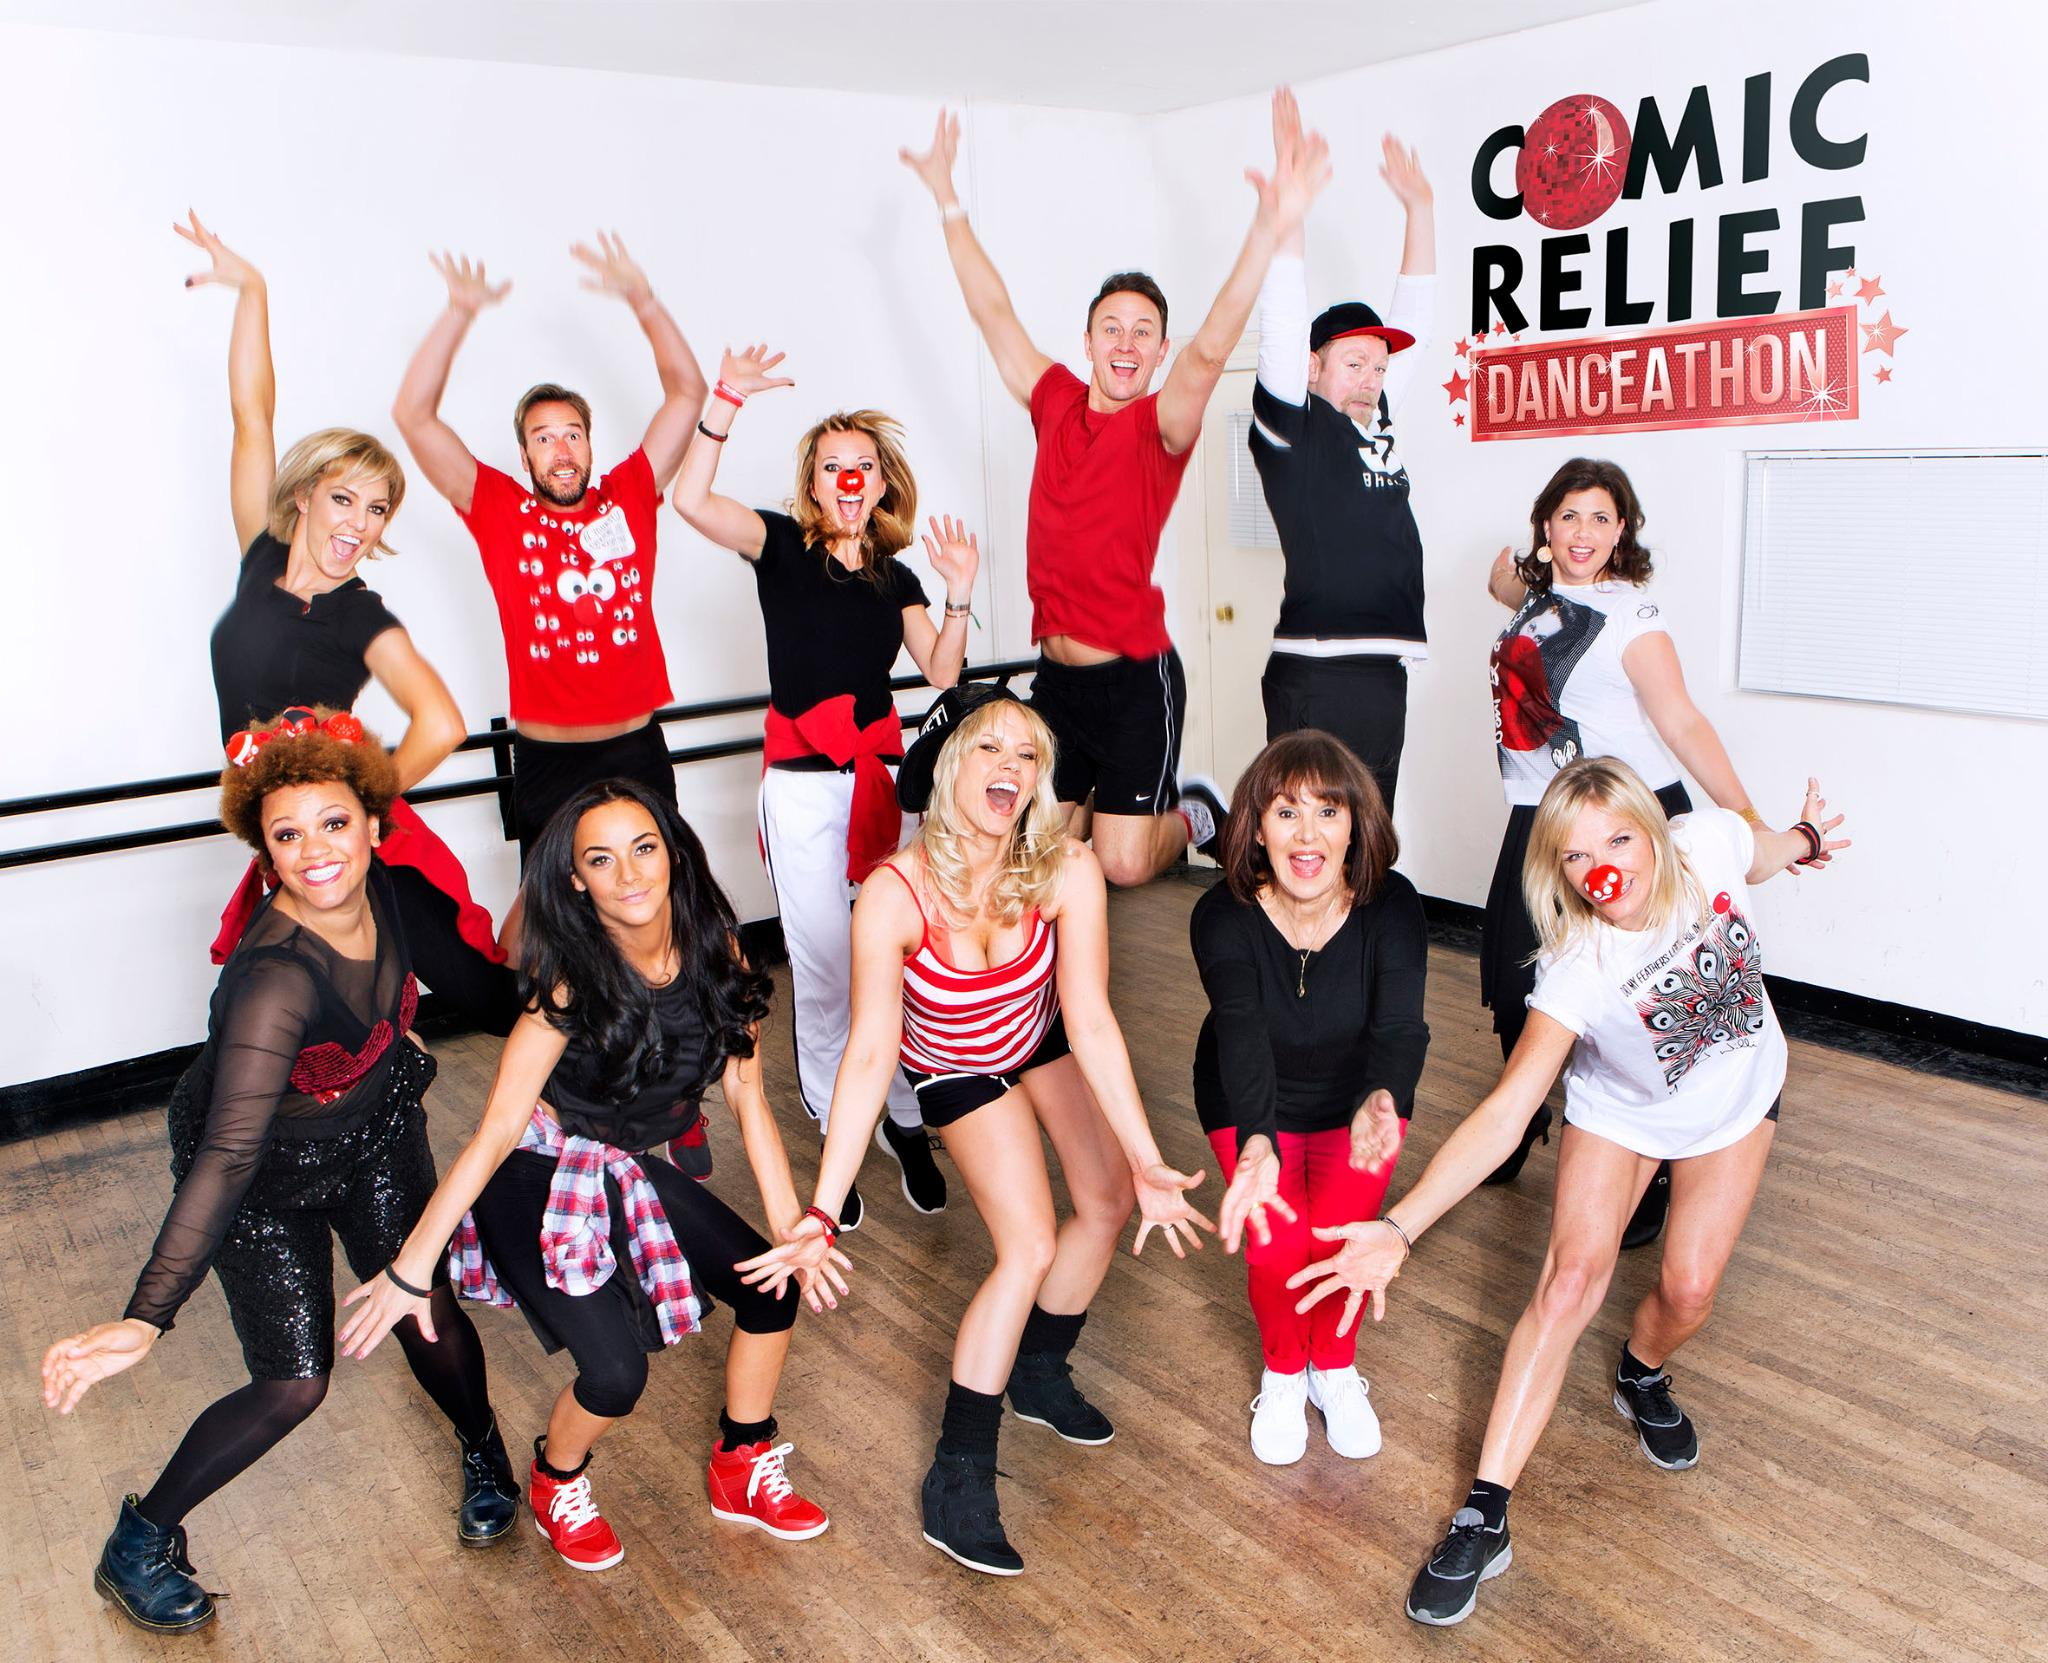 Join me in the first ever @rednoseday #danceathon on 8th March at Wembley Arena http://t.co/1qW6B0dlWK WHO'S IN?! http://t.co/ggO0agw0xf